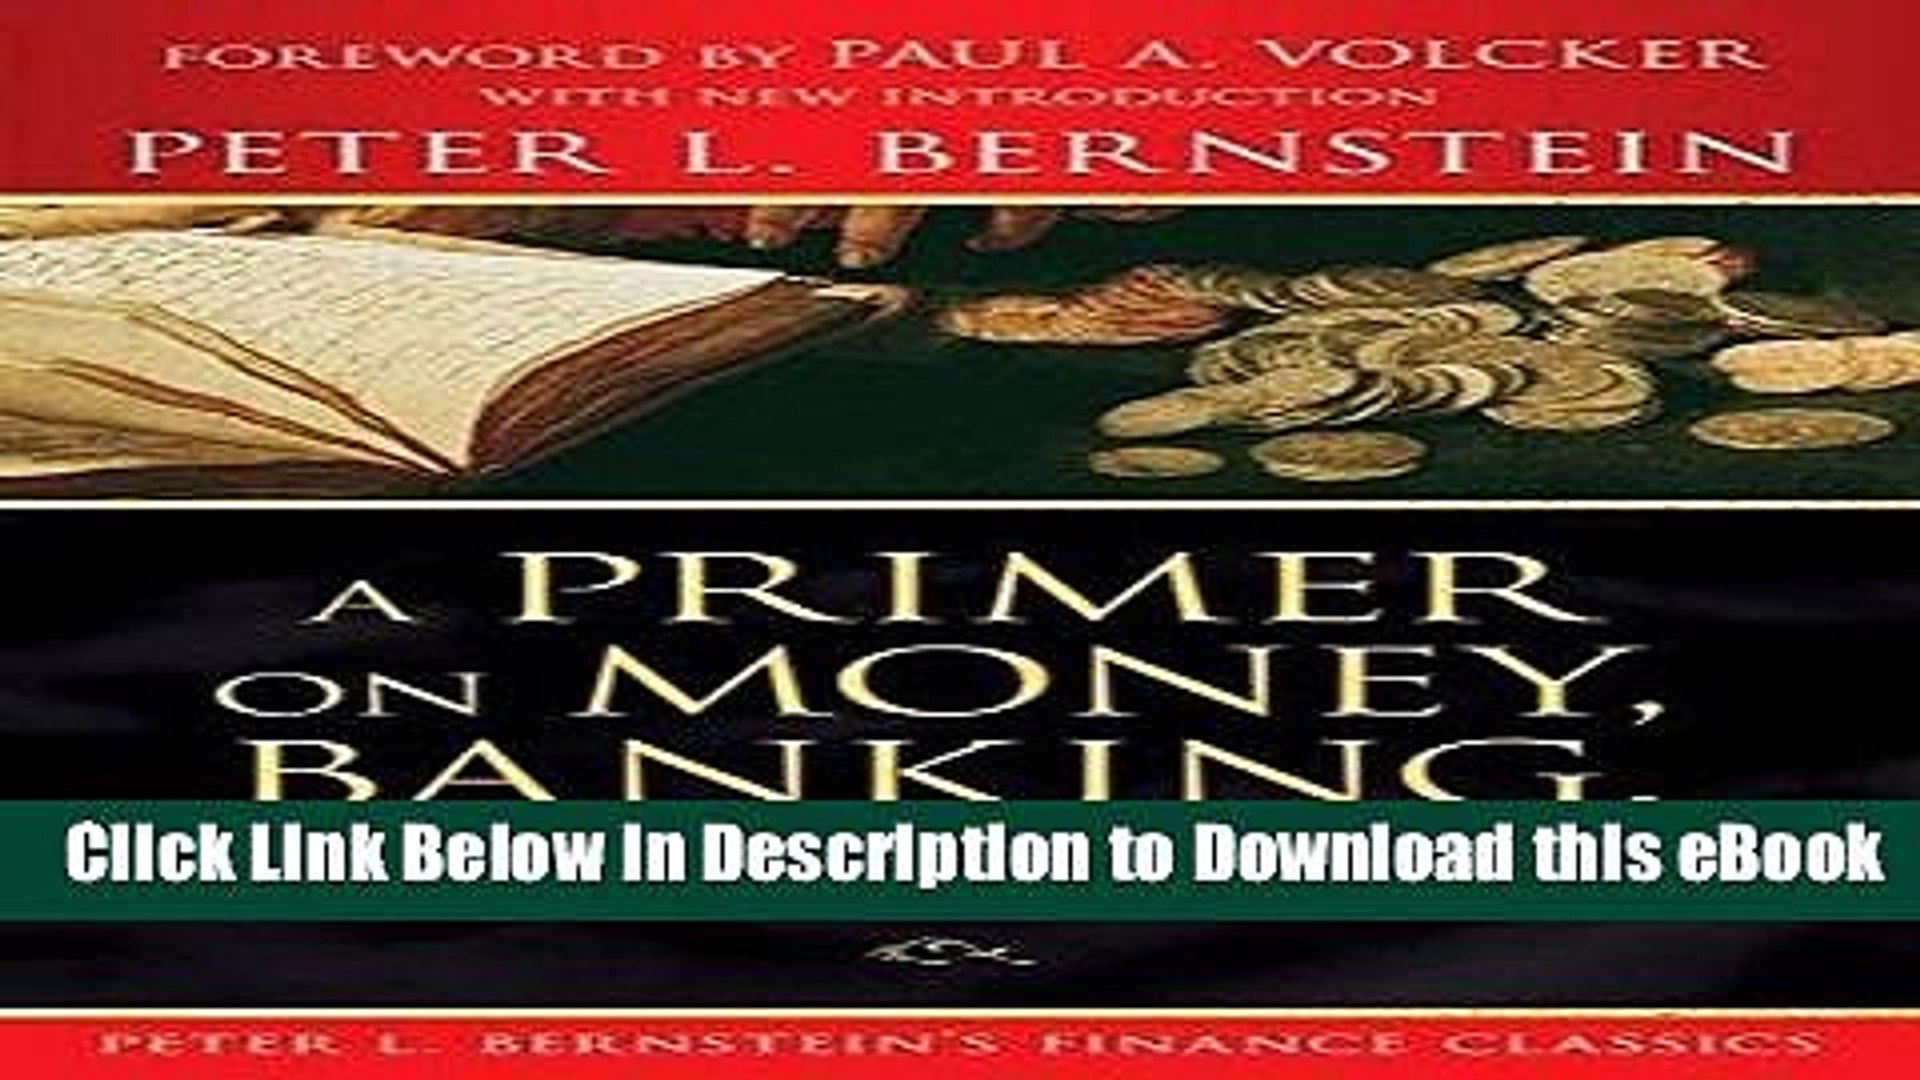 eBook Free A Primer on Money, Banking, and Gold (Peter L. Bernstein s Finance Classics) Free Online